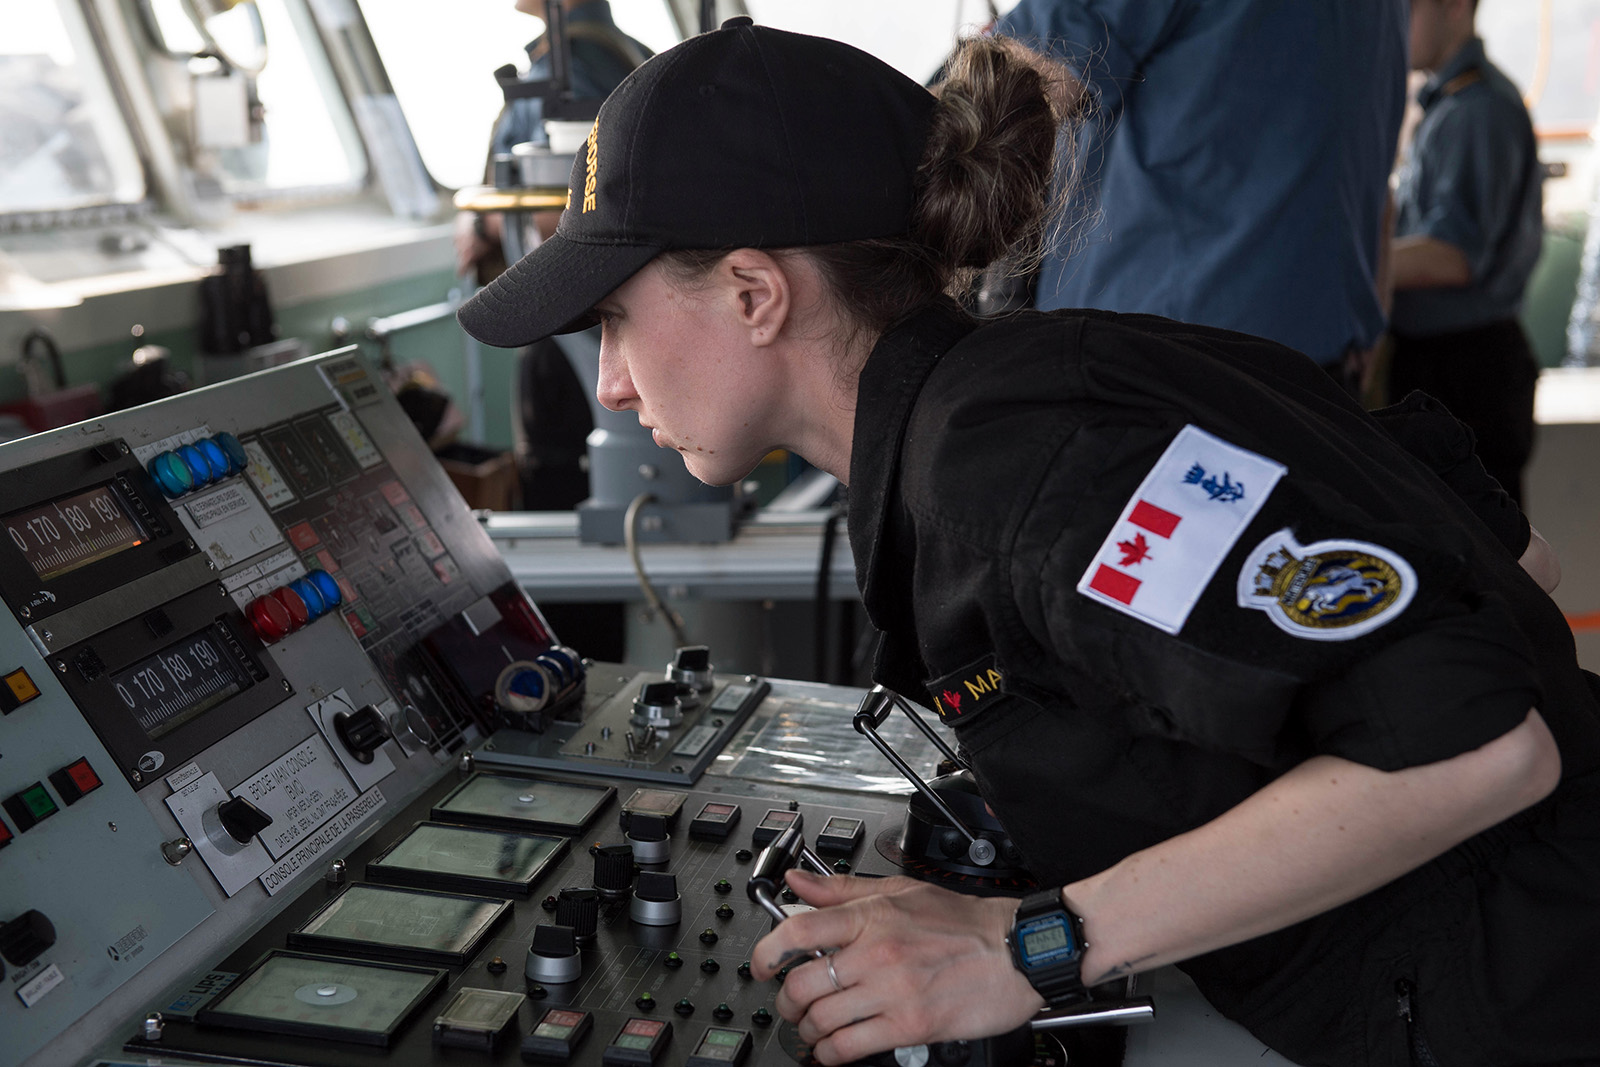 A member of the Royal Canadian Navy acts as the helmsman during departure to Op CARIBBE 2020, at a foreign port, on February 18, 2020.